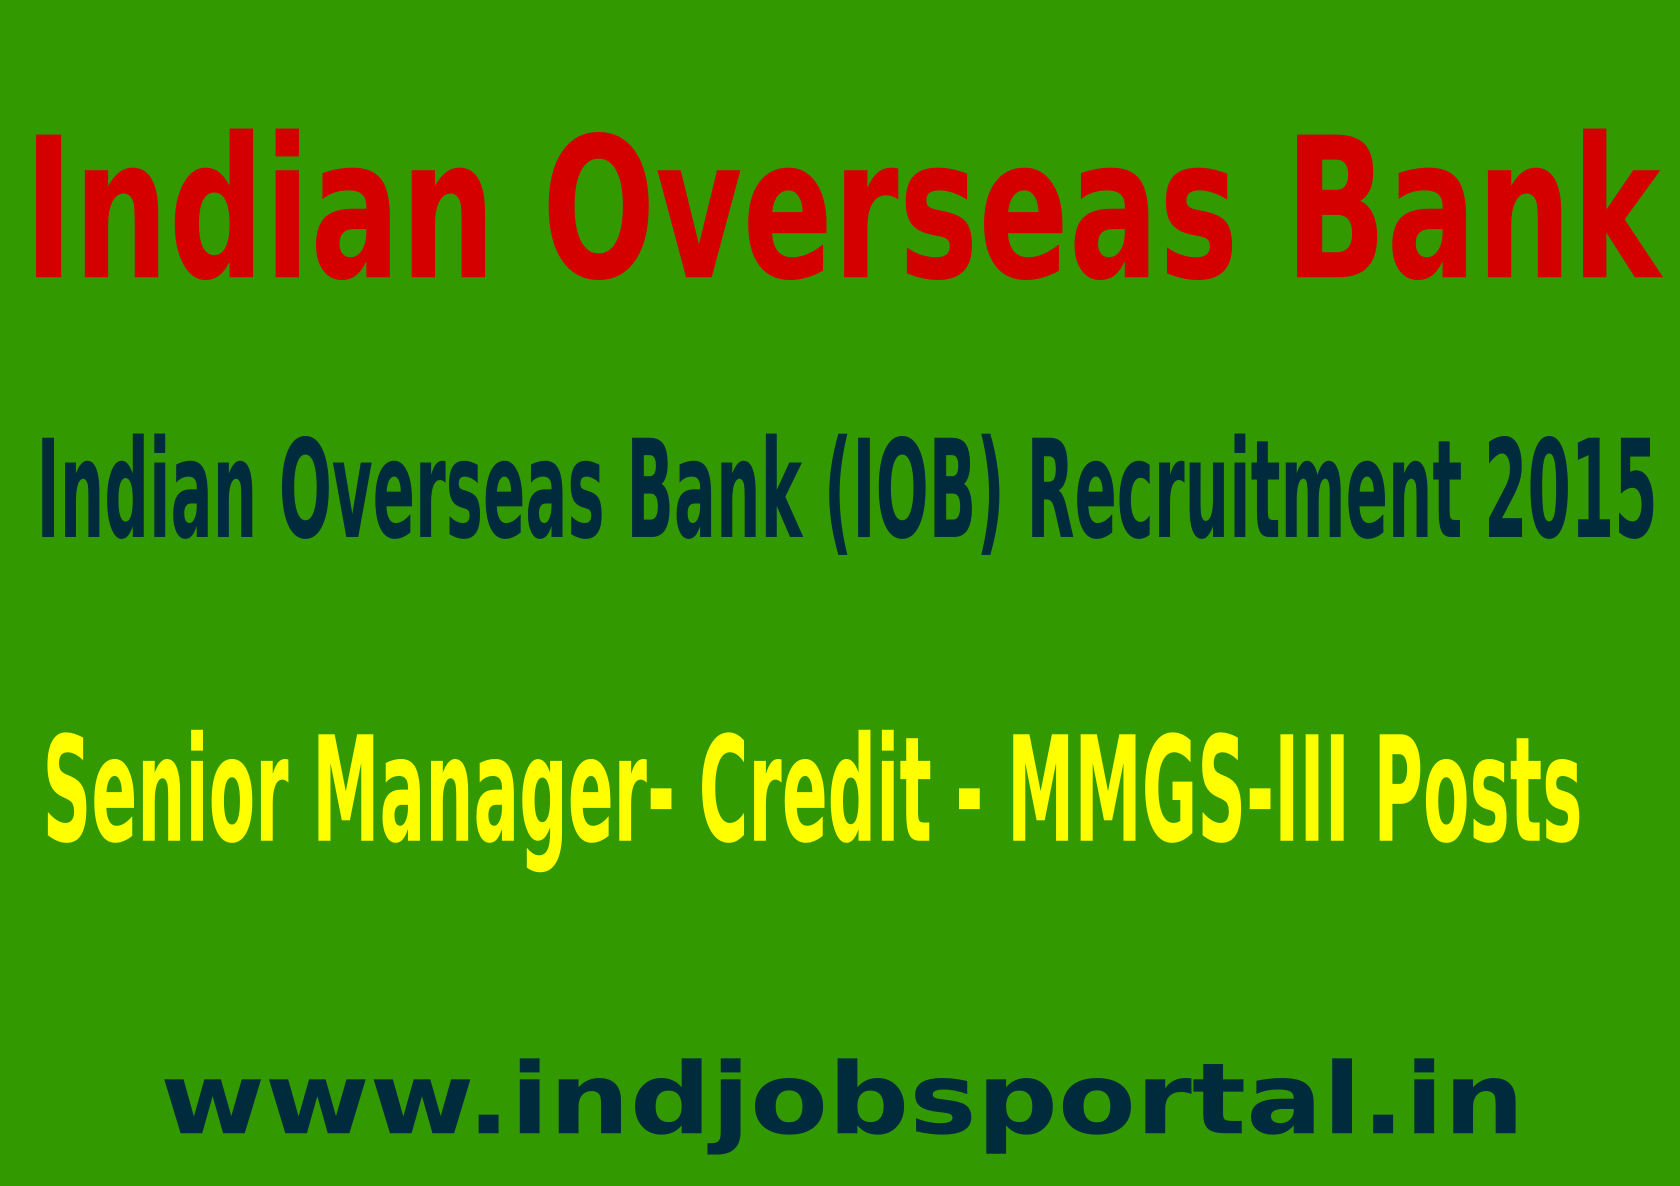 Indian Overseas Bank (IOB) Recruitment 2015 For 100 Senior Manager- Credit - MMGS-III Posts